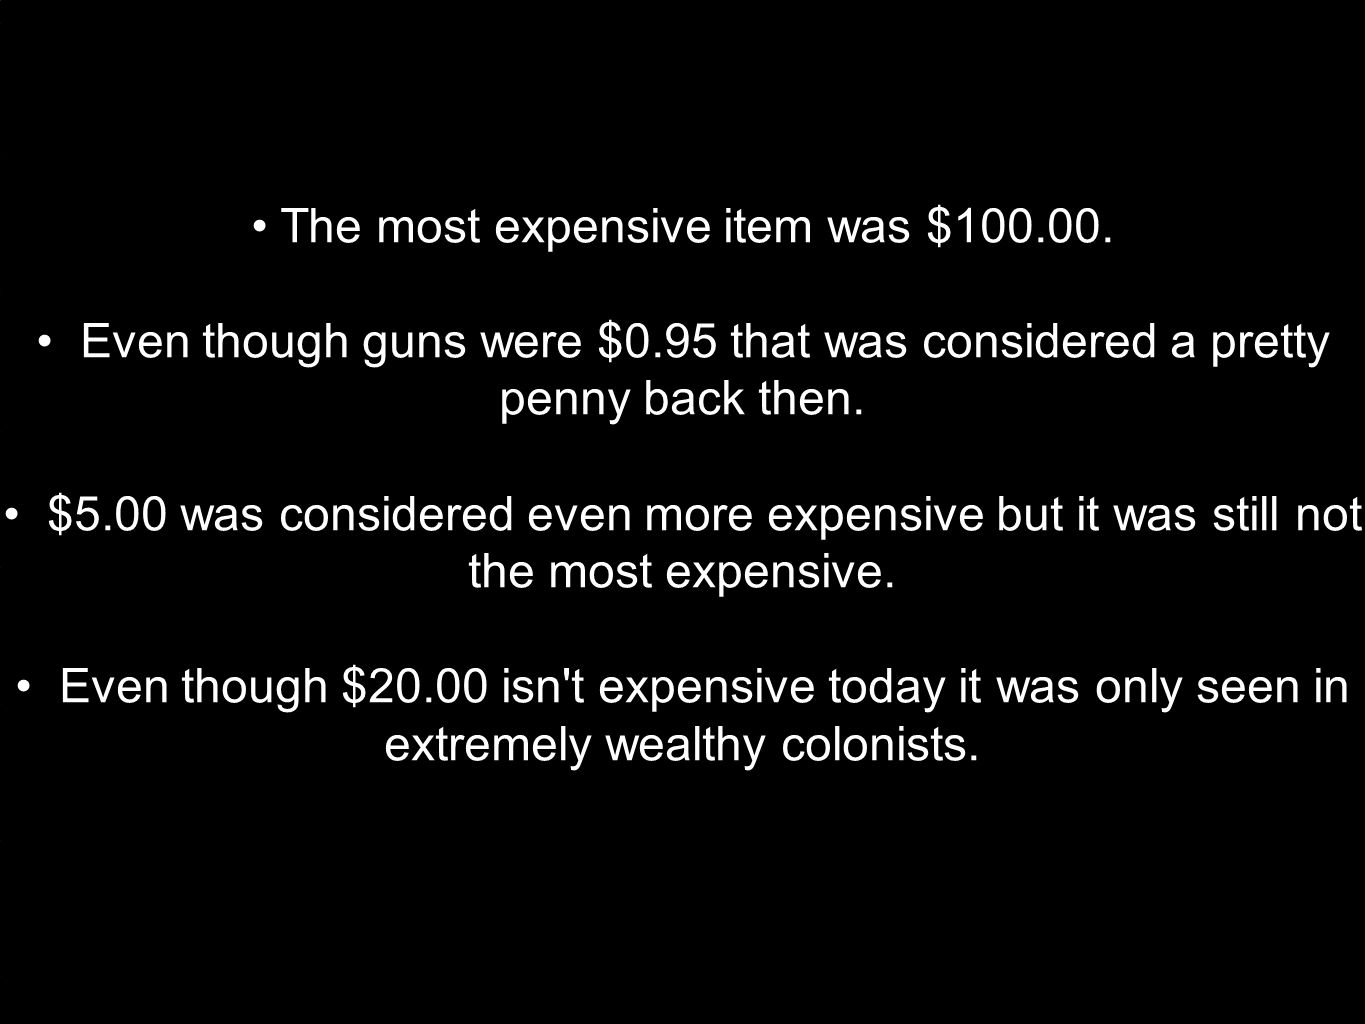 The most expensive item was $100.00.